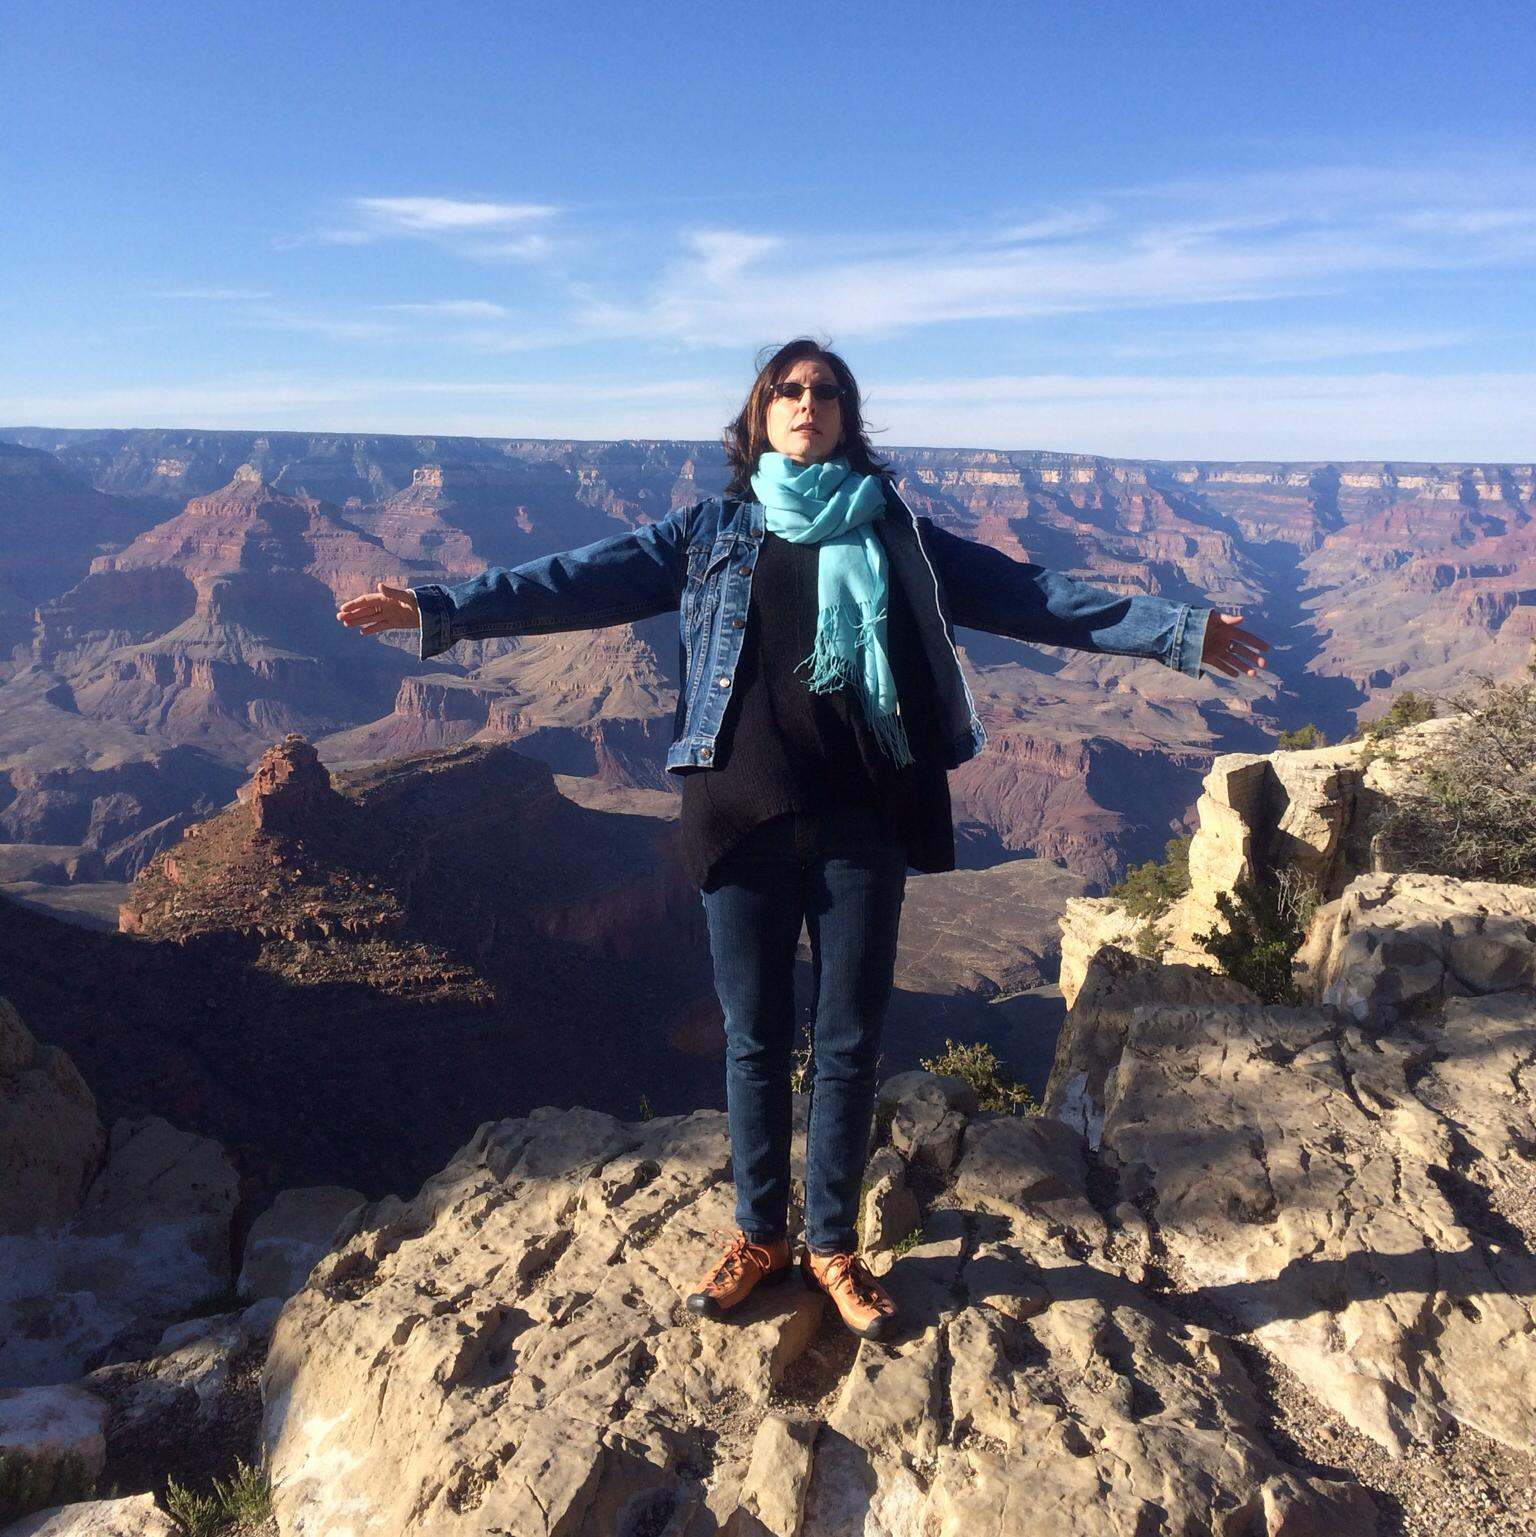 Katie McFadzen strikes a pose at the Grand Canyon.